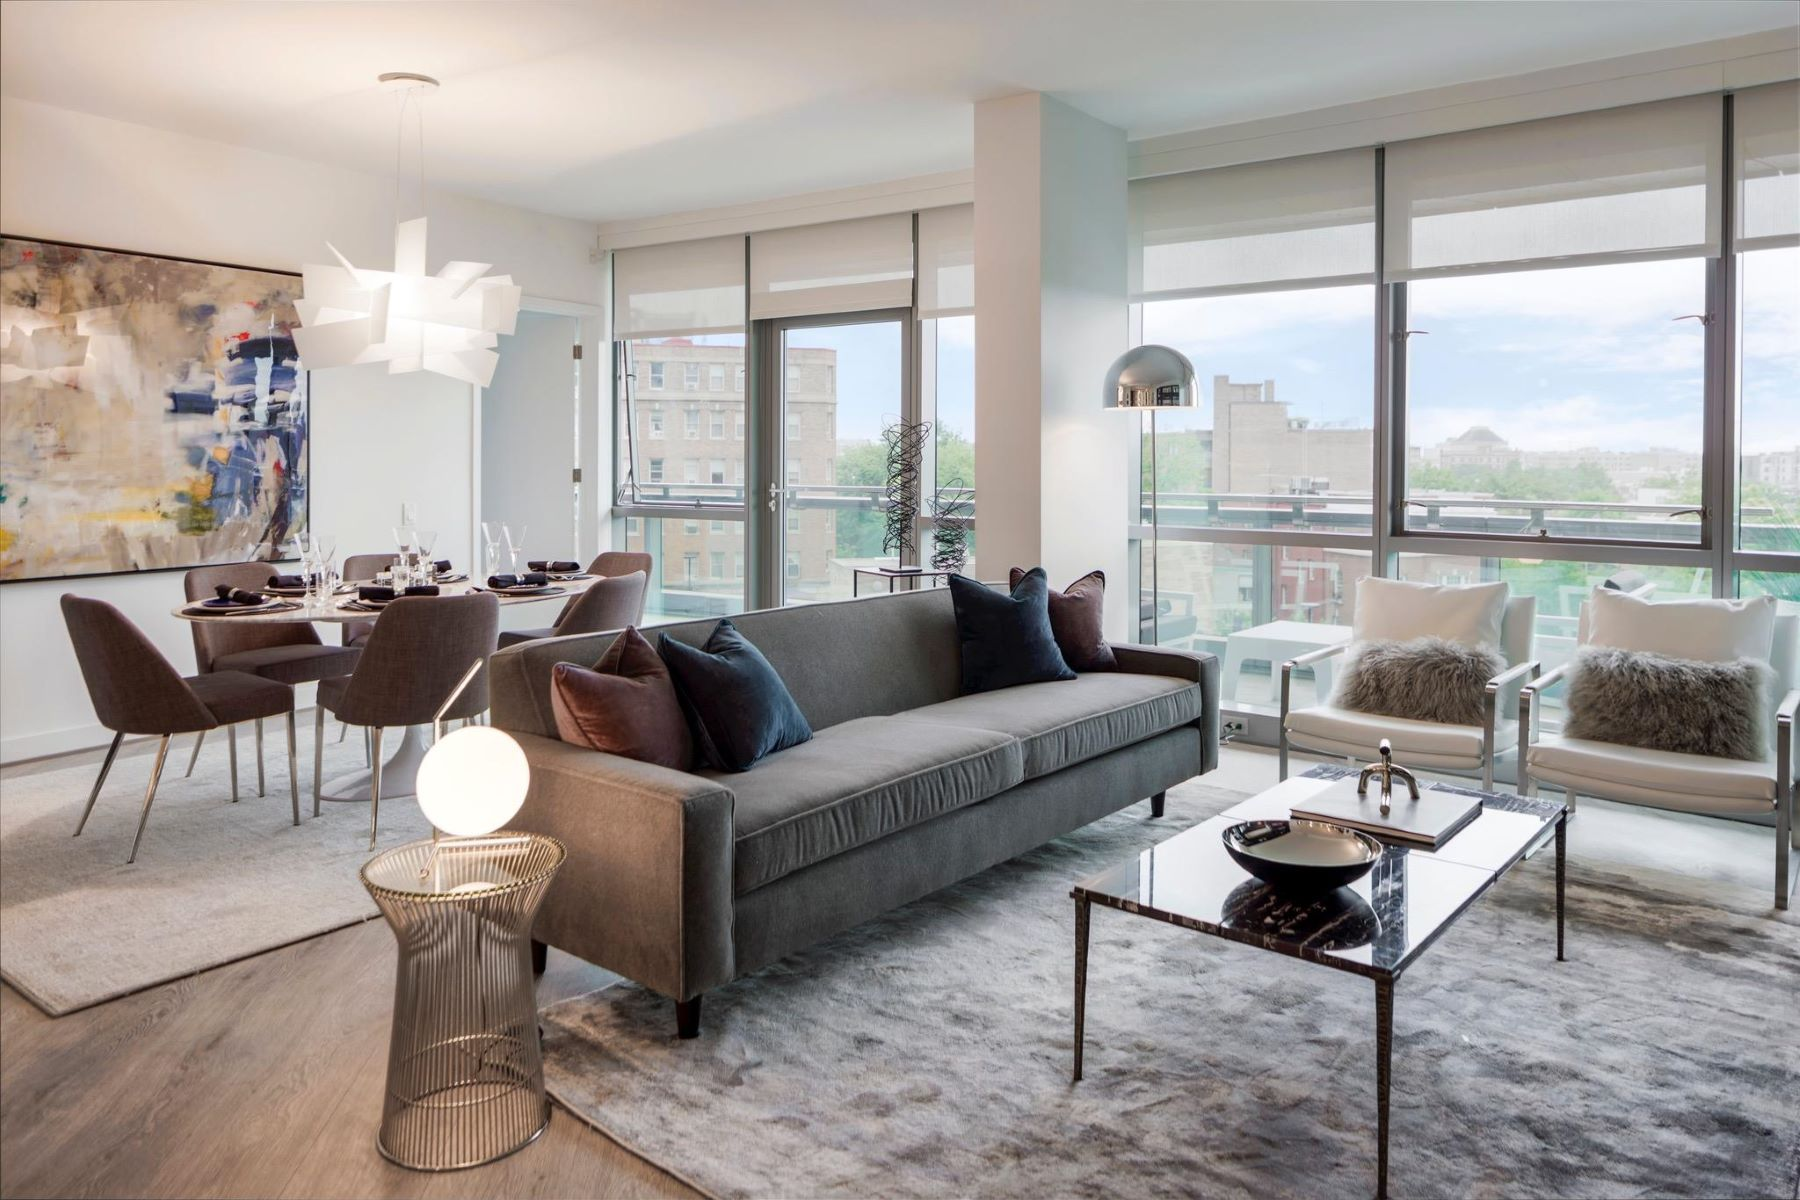 Apartment for Rent at 1901 Connecticut Ave Nw #206 1901 Connecticut Ave Nw #206 Washington, District Of Columbia 20009 United States